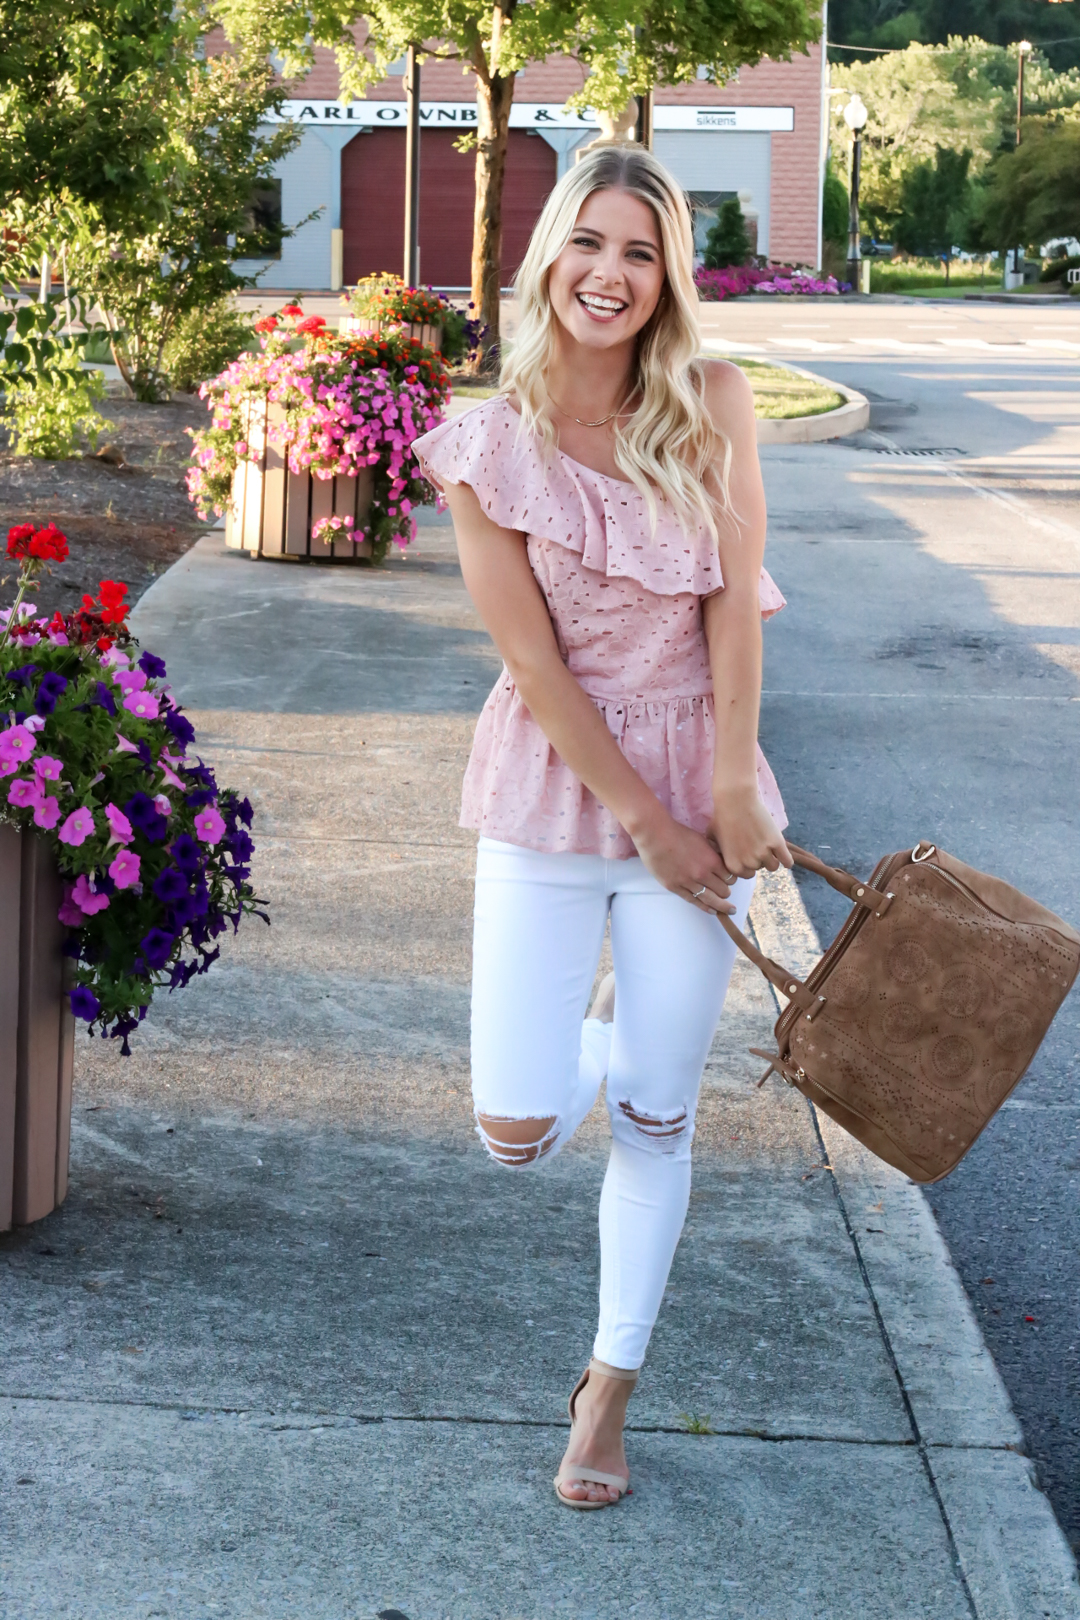 Blush Pink Eylet One Shoulder Top-7.jpg